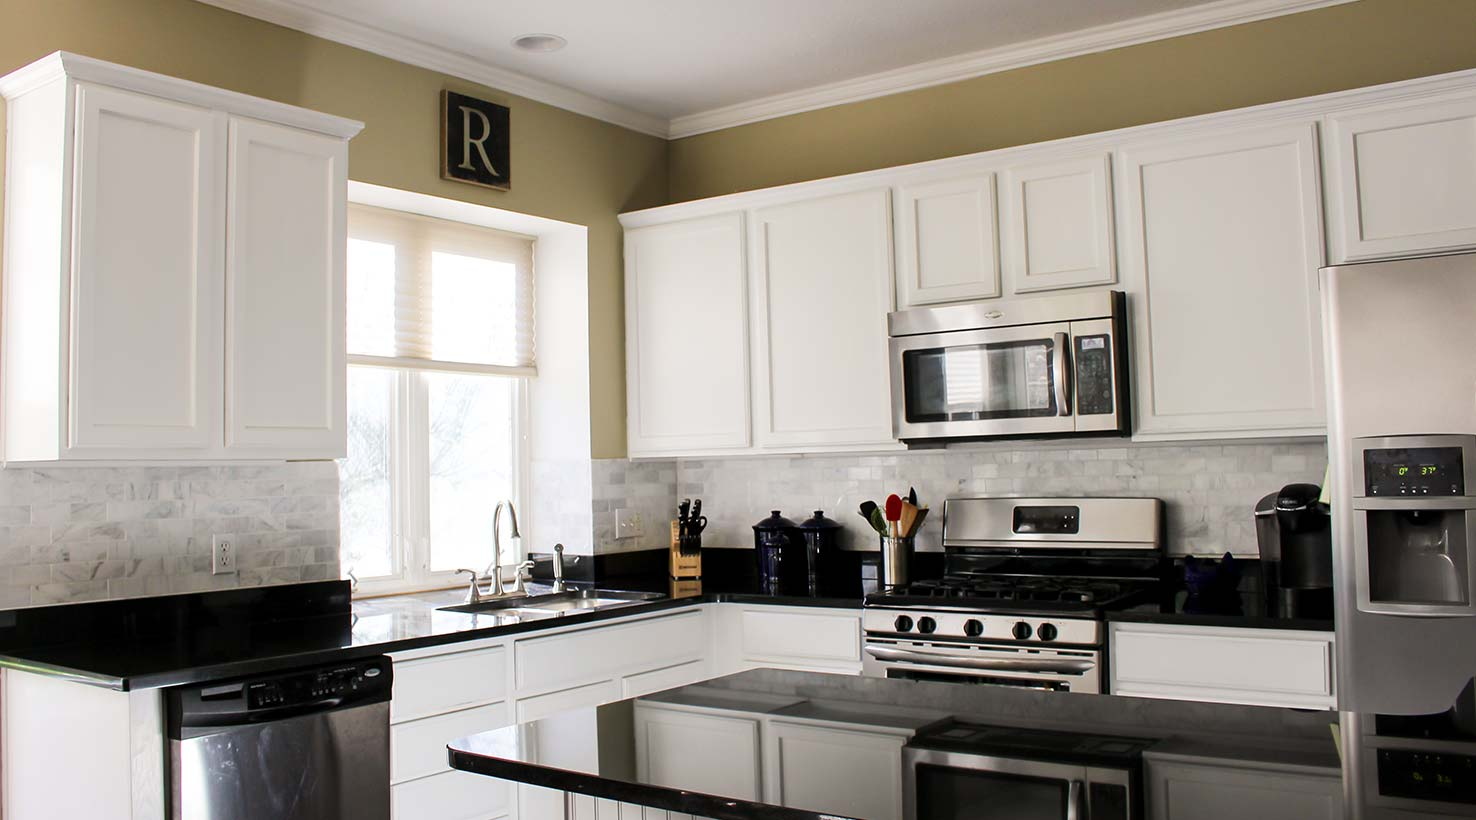 Kitchen color inspiration gallery sherwin williams Help design kitchen colors